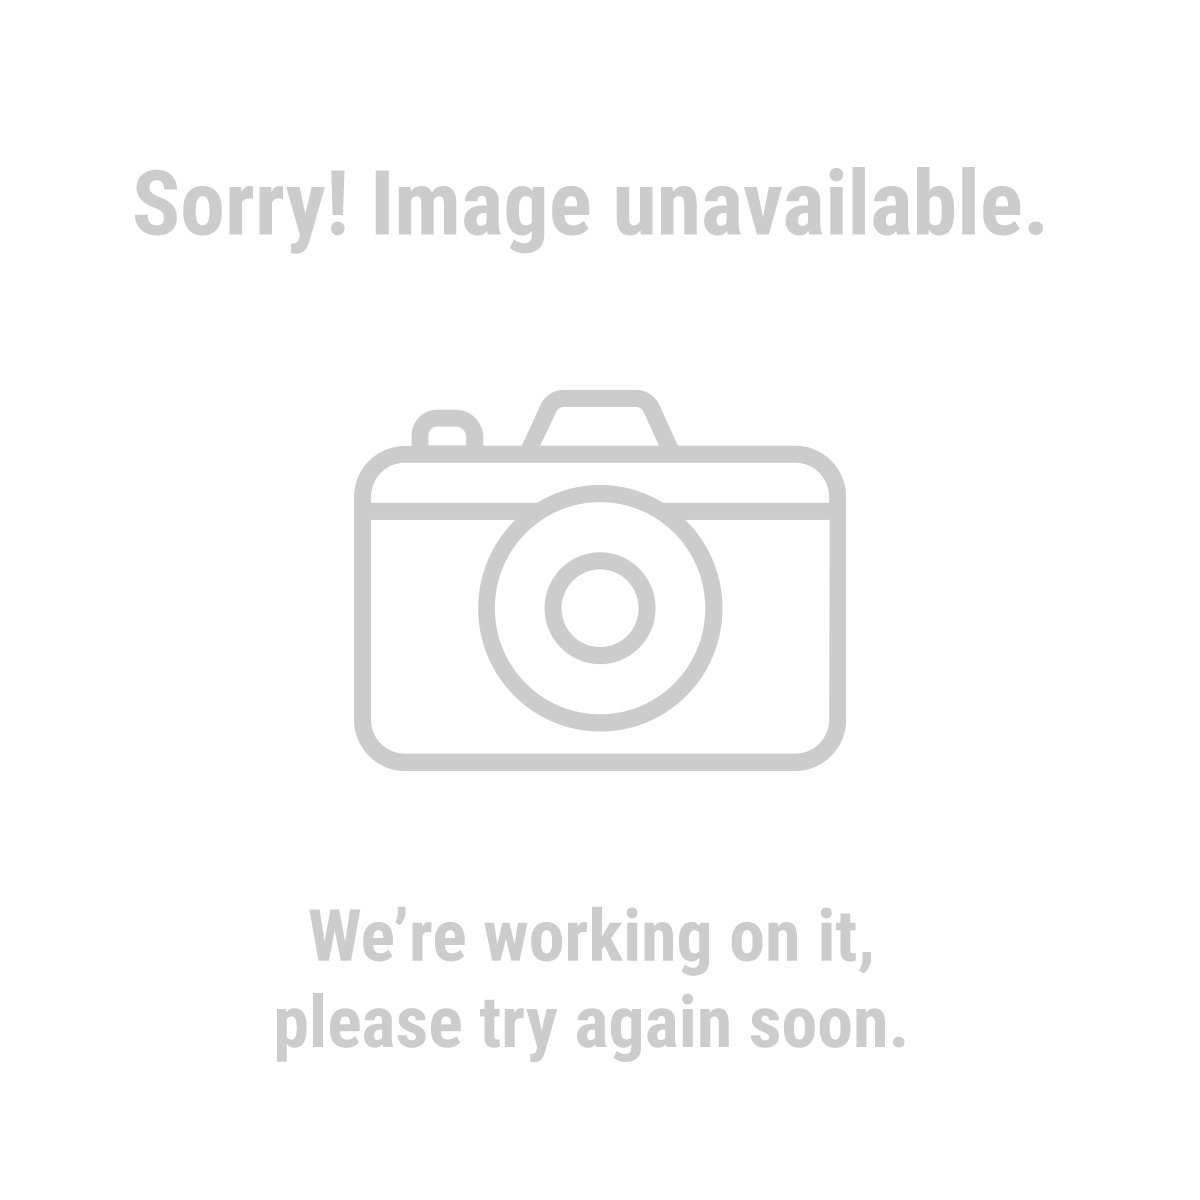 Central Forge 4614 12 Piece Precision Needle File Set